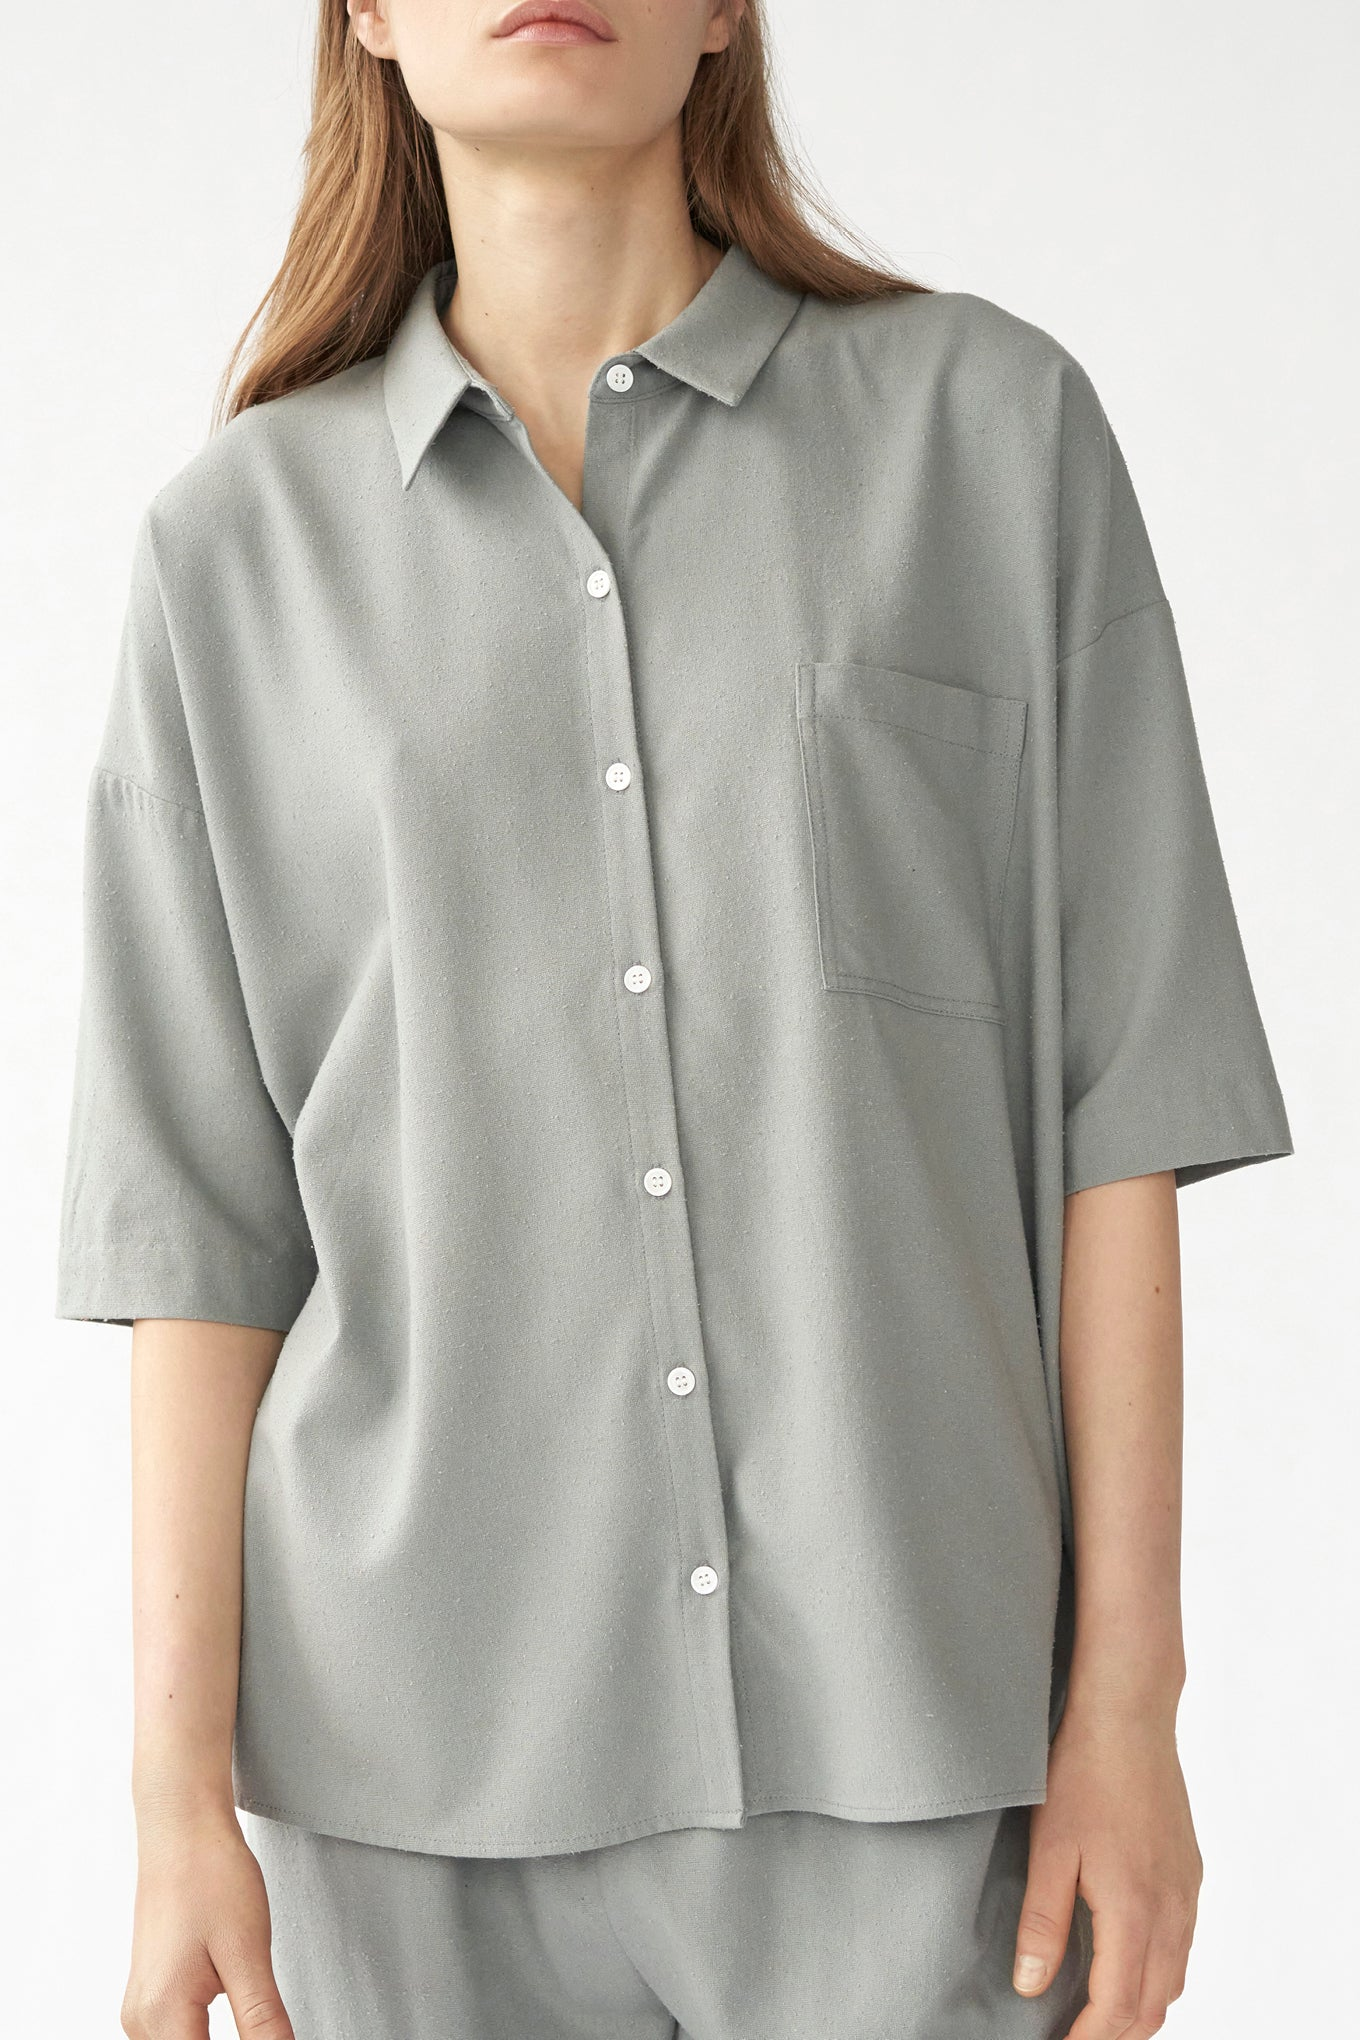 BIANCA SS STRAIGHT SHIRT - AQUA GREY - RAW SILK